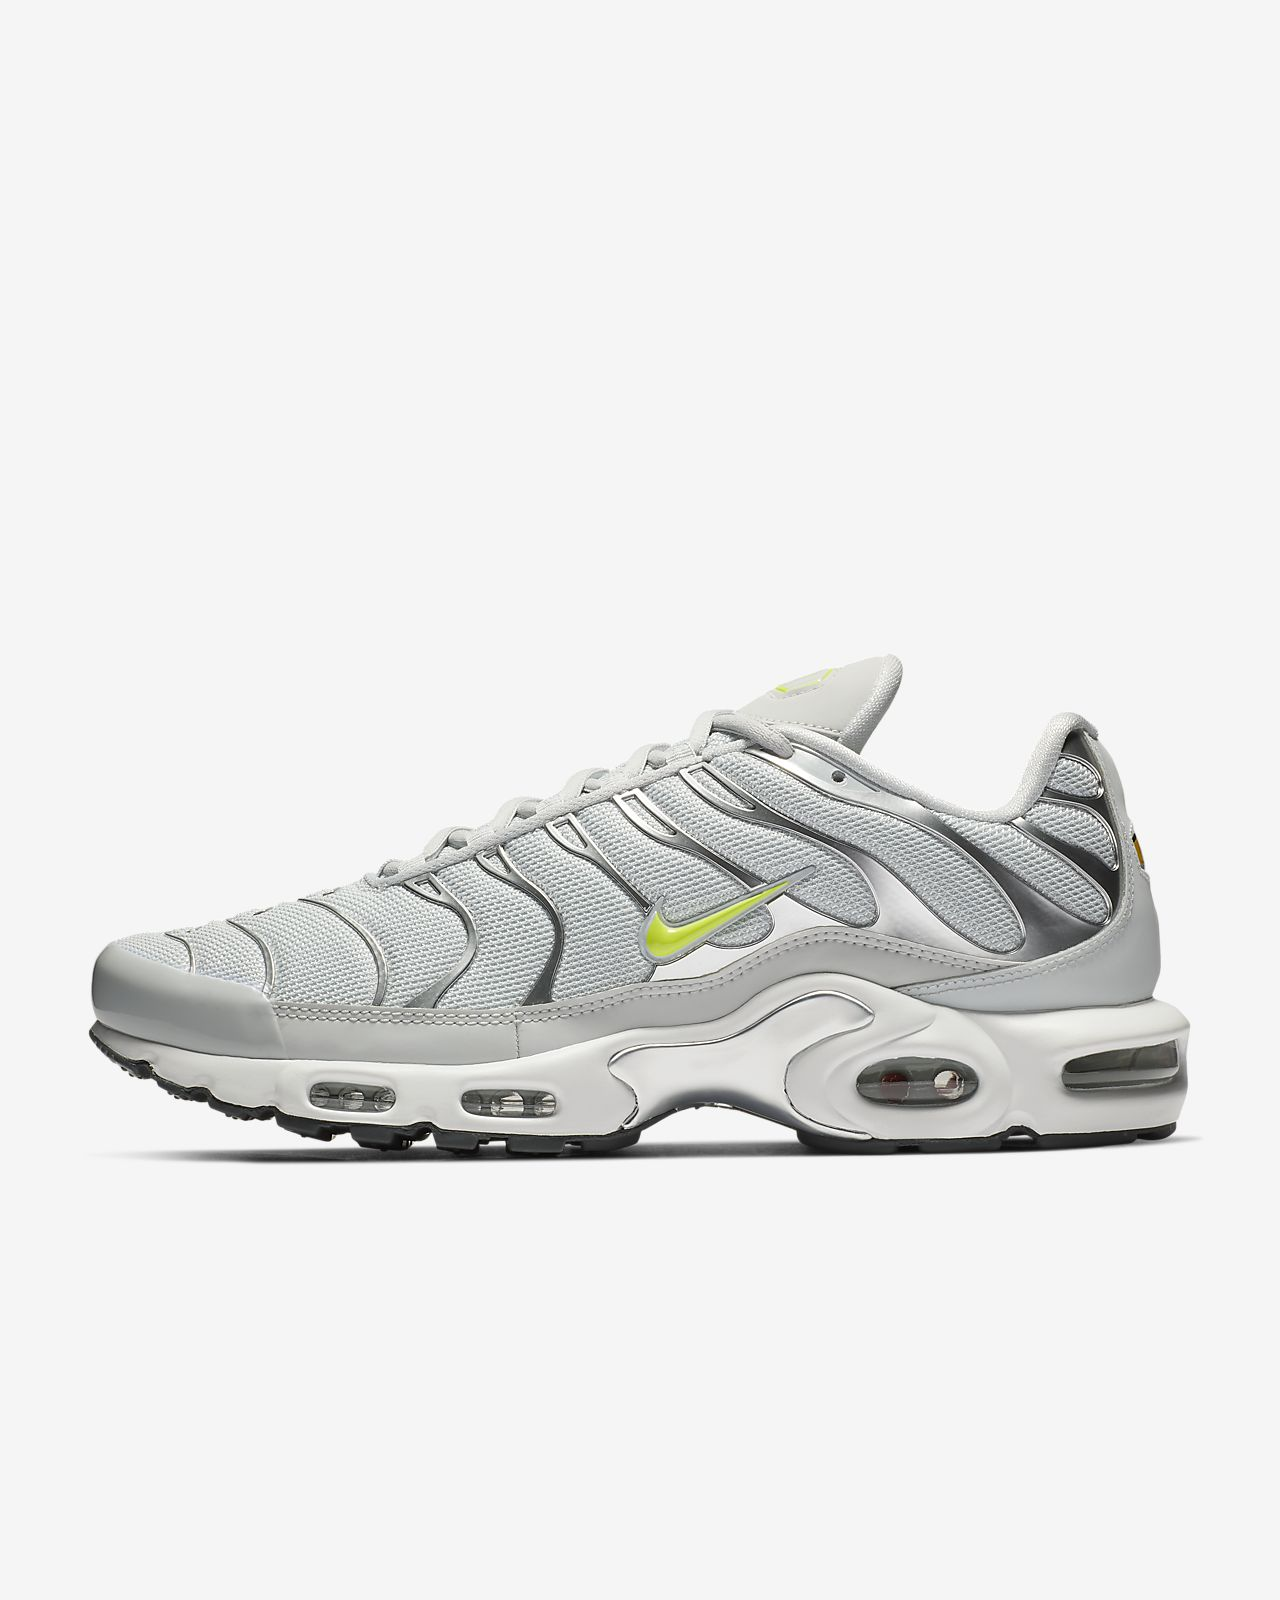 meet 7968e dfd9b ... Nike Air Max Plus TN SE Men s Shoe